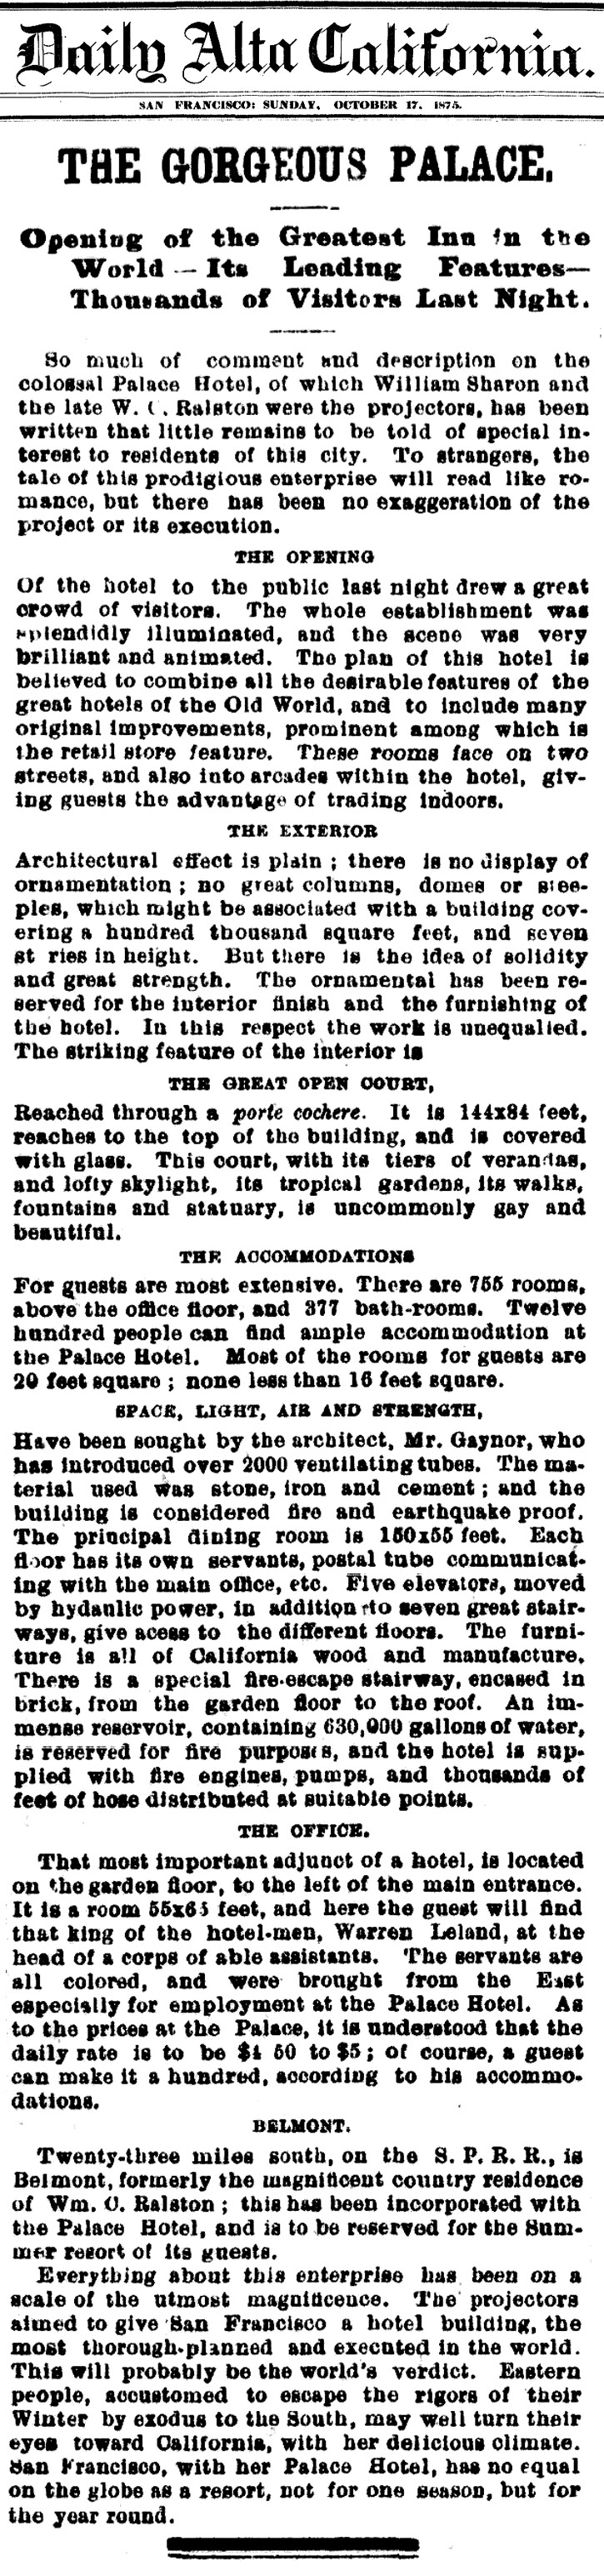 The Daily Alta California's front page story reporting the opening of the Palace Hotel in San Francisco (1875)